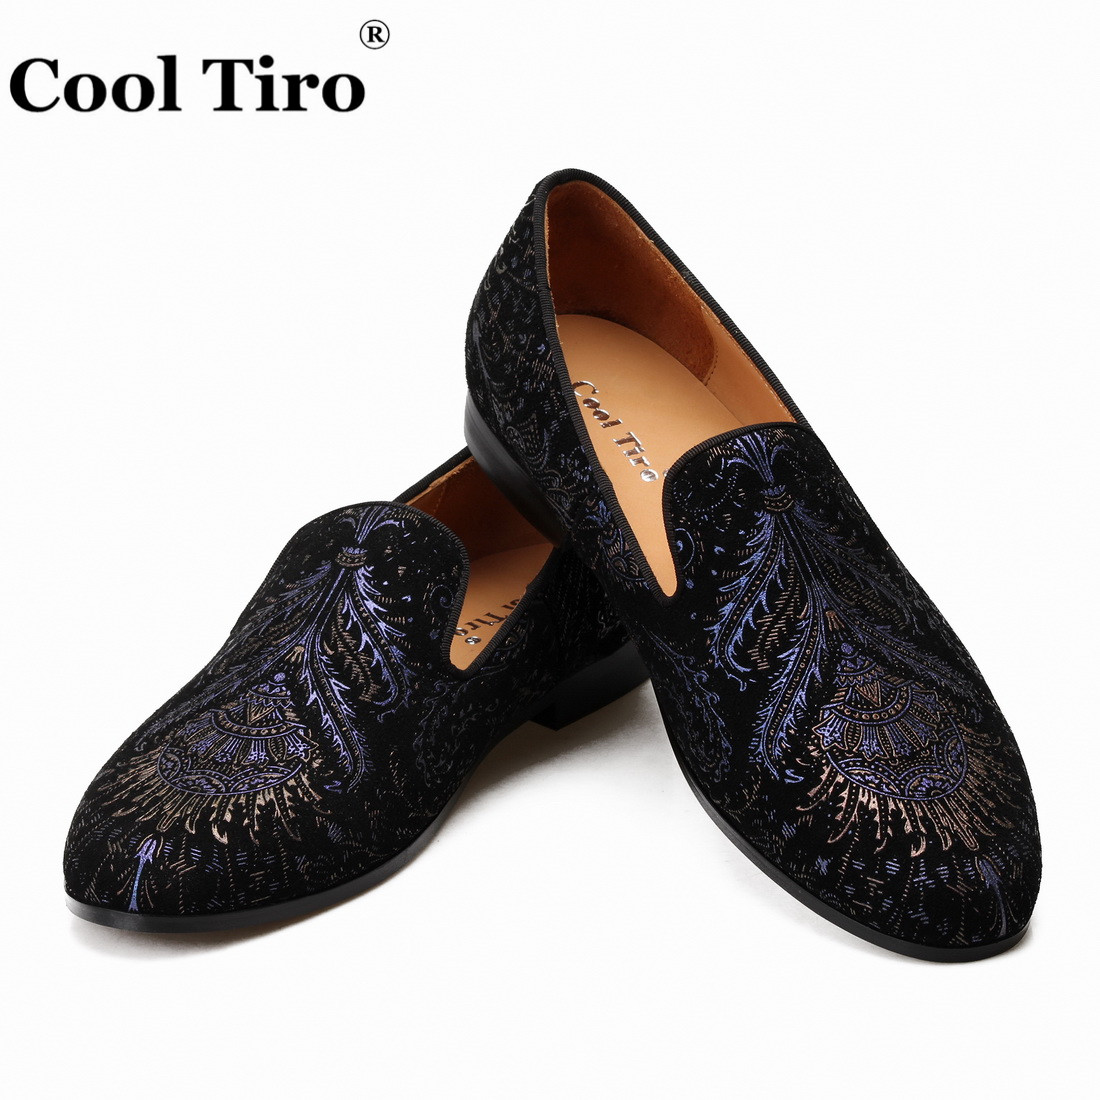 Cool Tiro Black Suede Loafers Men s Moccasins Casual Shoes Slippers Man Flat Dress Shoes Genuine